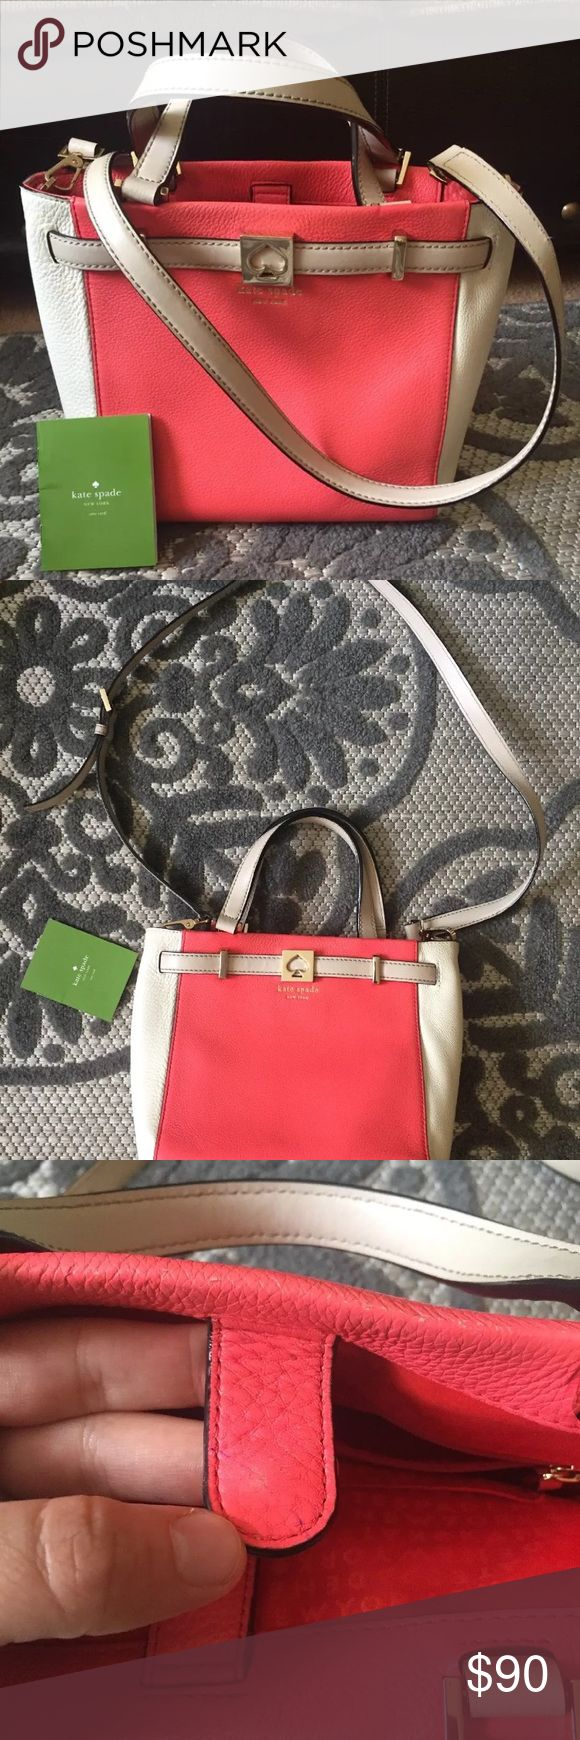 Kate spade coral leather tote crossbody Houston st Kate spade leather crossbody tote in coral color. It is the Leo Houston street crossbody. Has a few markings and a little normal wear but overall good condition! $355 msrp. kate spade Bags Crossbody Bags